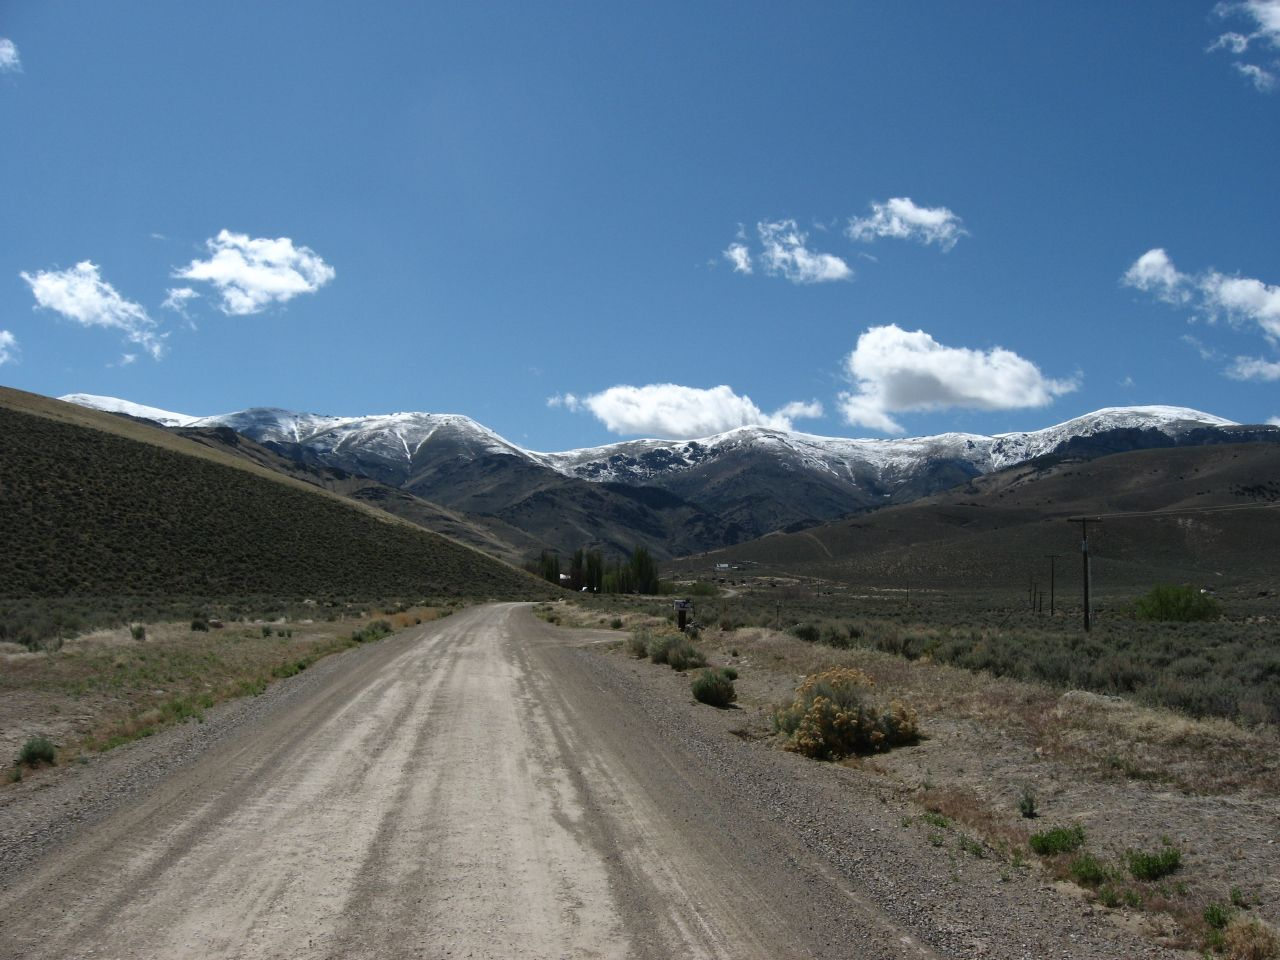 Blm Is Holding A Geothermal Lease Sale For Various Parcels